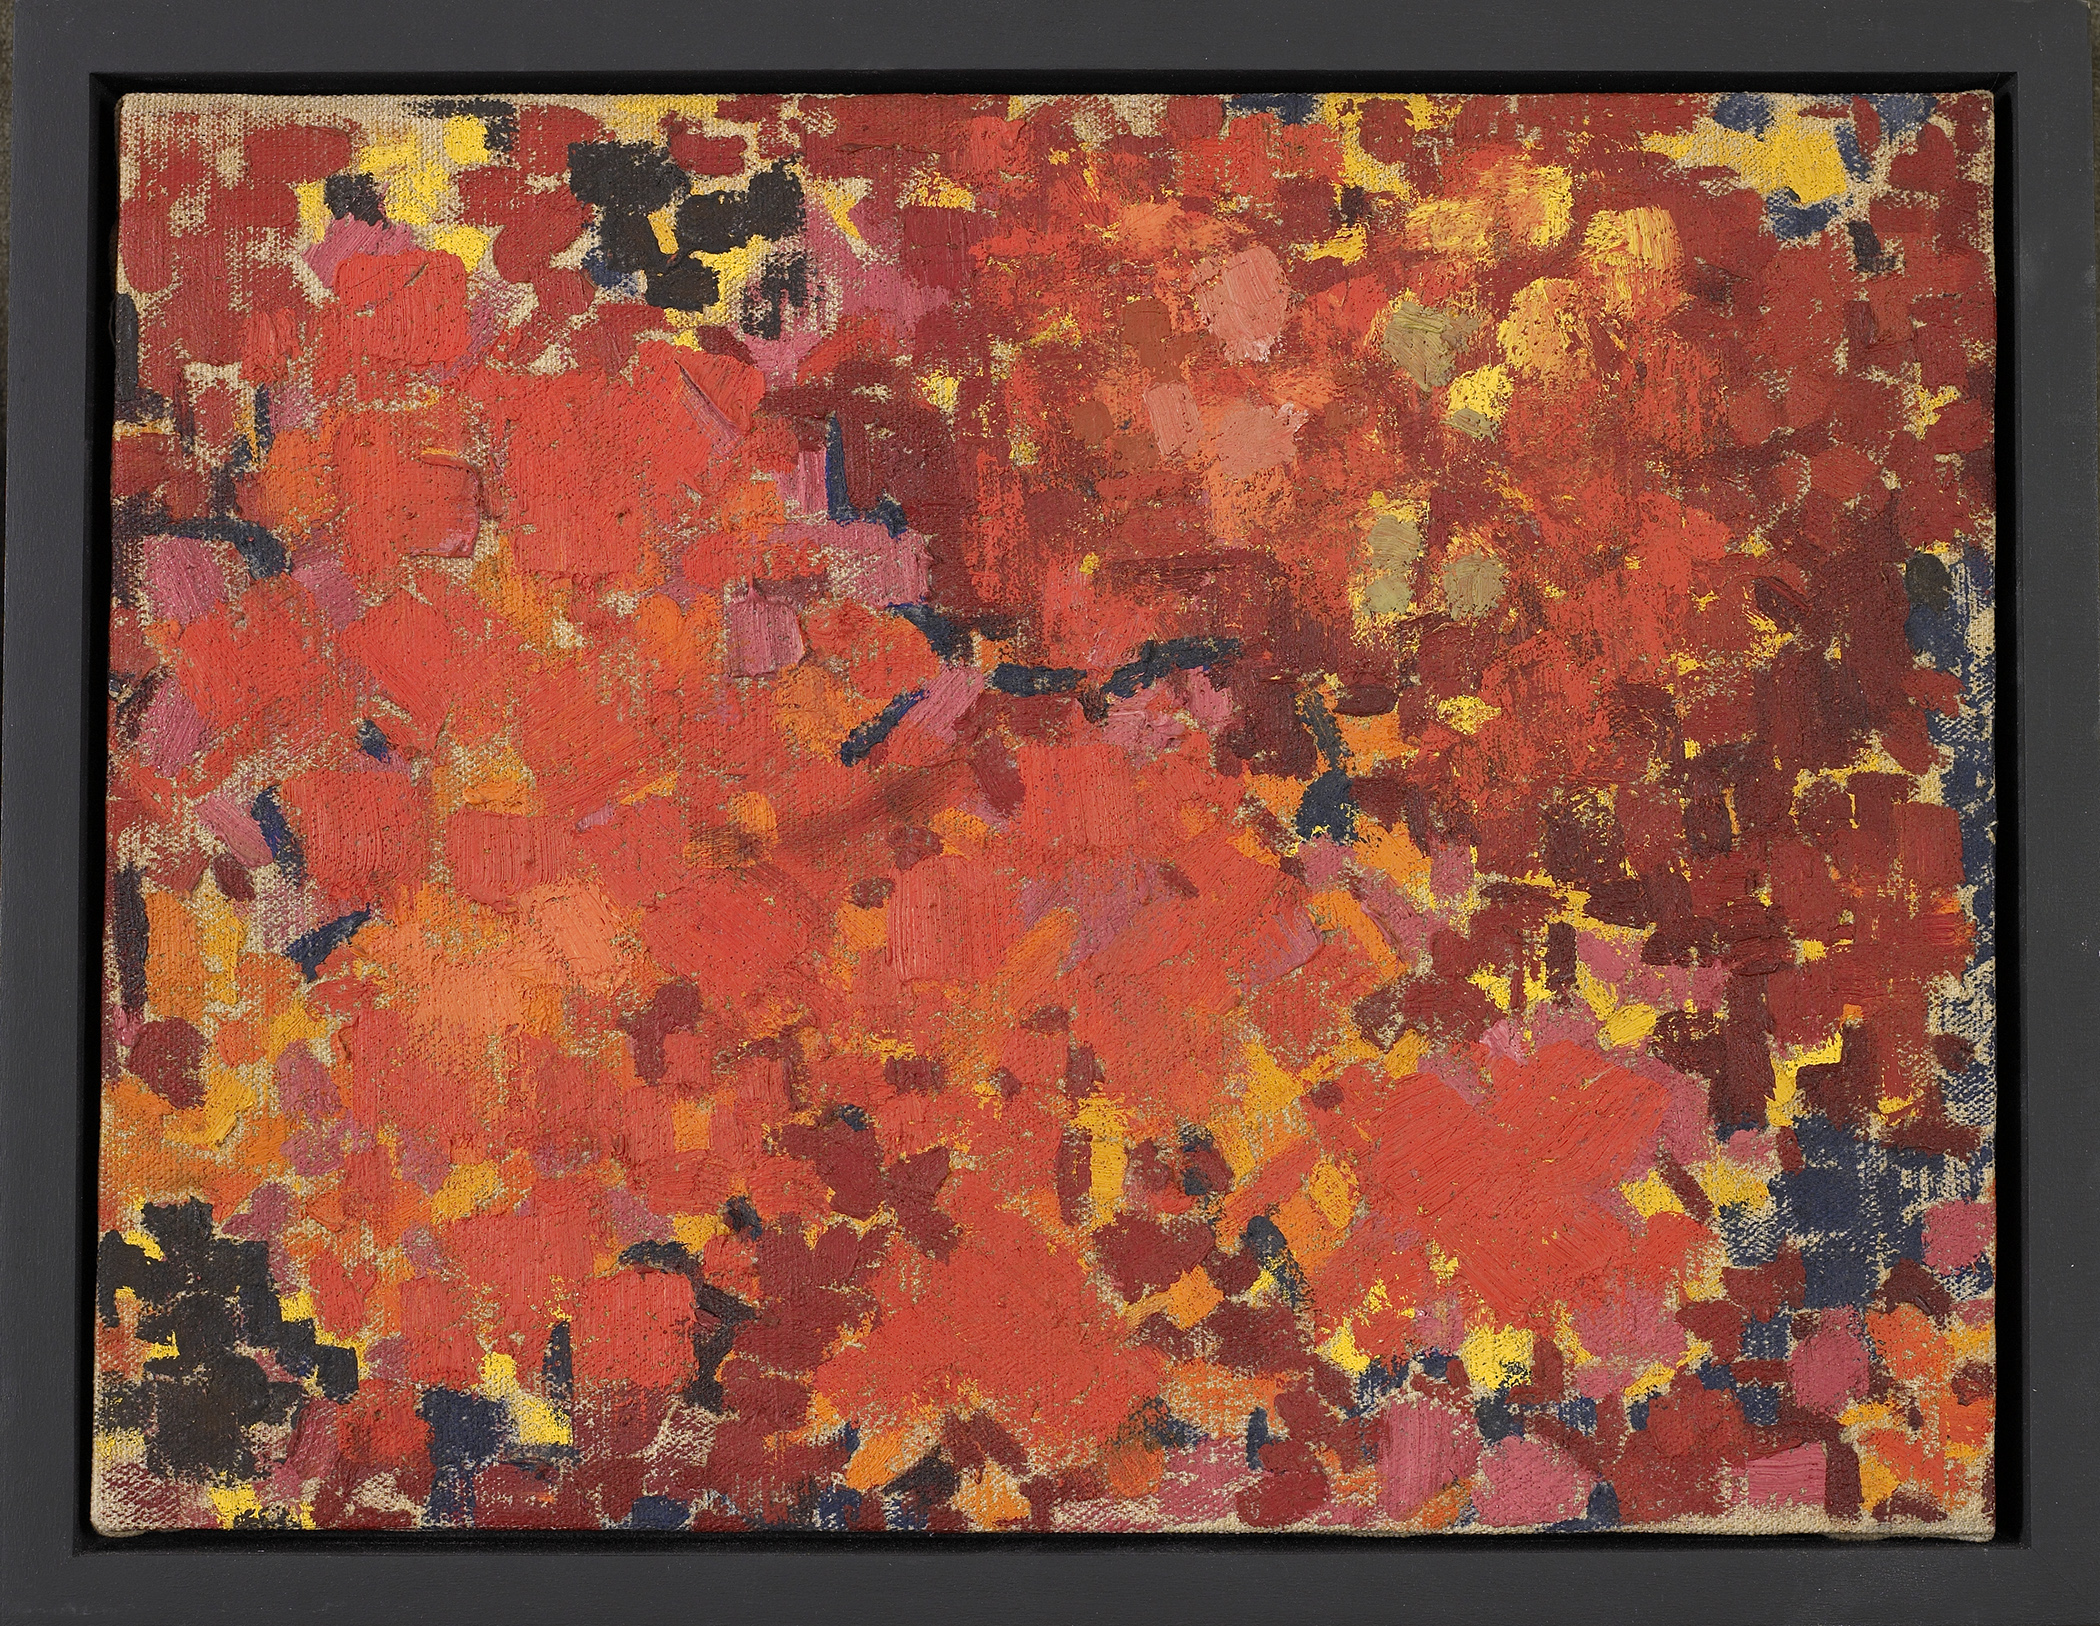 Matoaka Aflame , 1959,   Oil on canvas, 9 1/2 x 12 1/2 inches